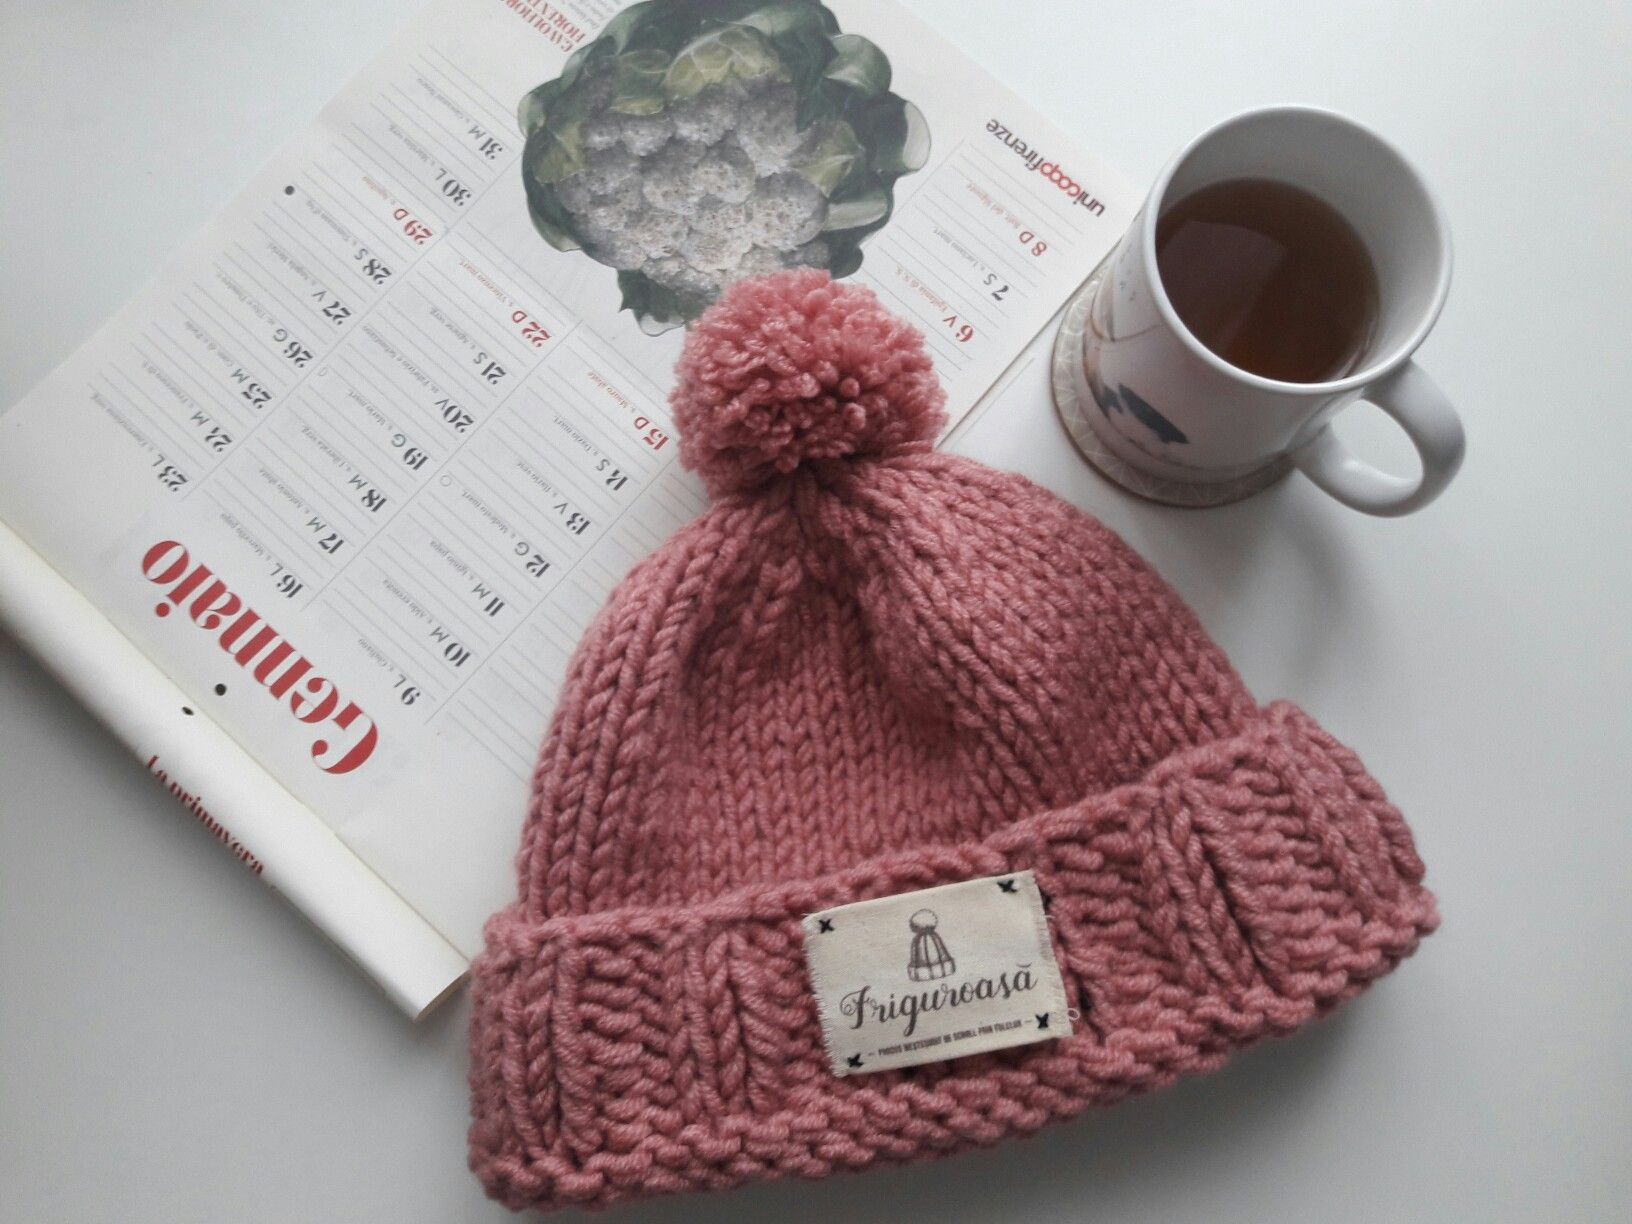 Lovely morning! #knithat #hat #caciula # caciulatricotata #pink #roz ...